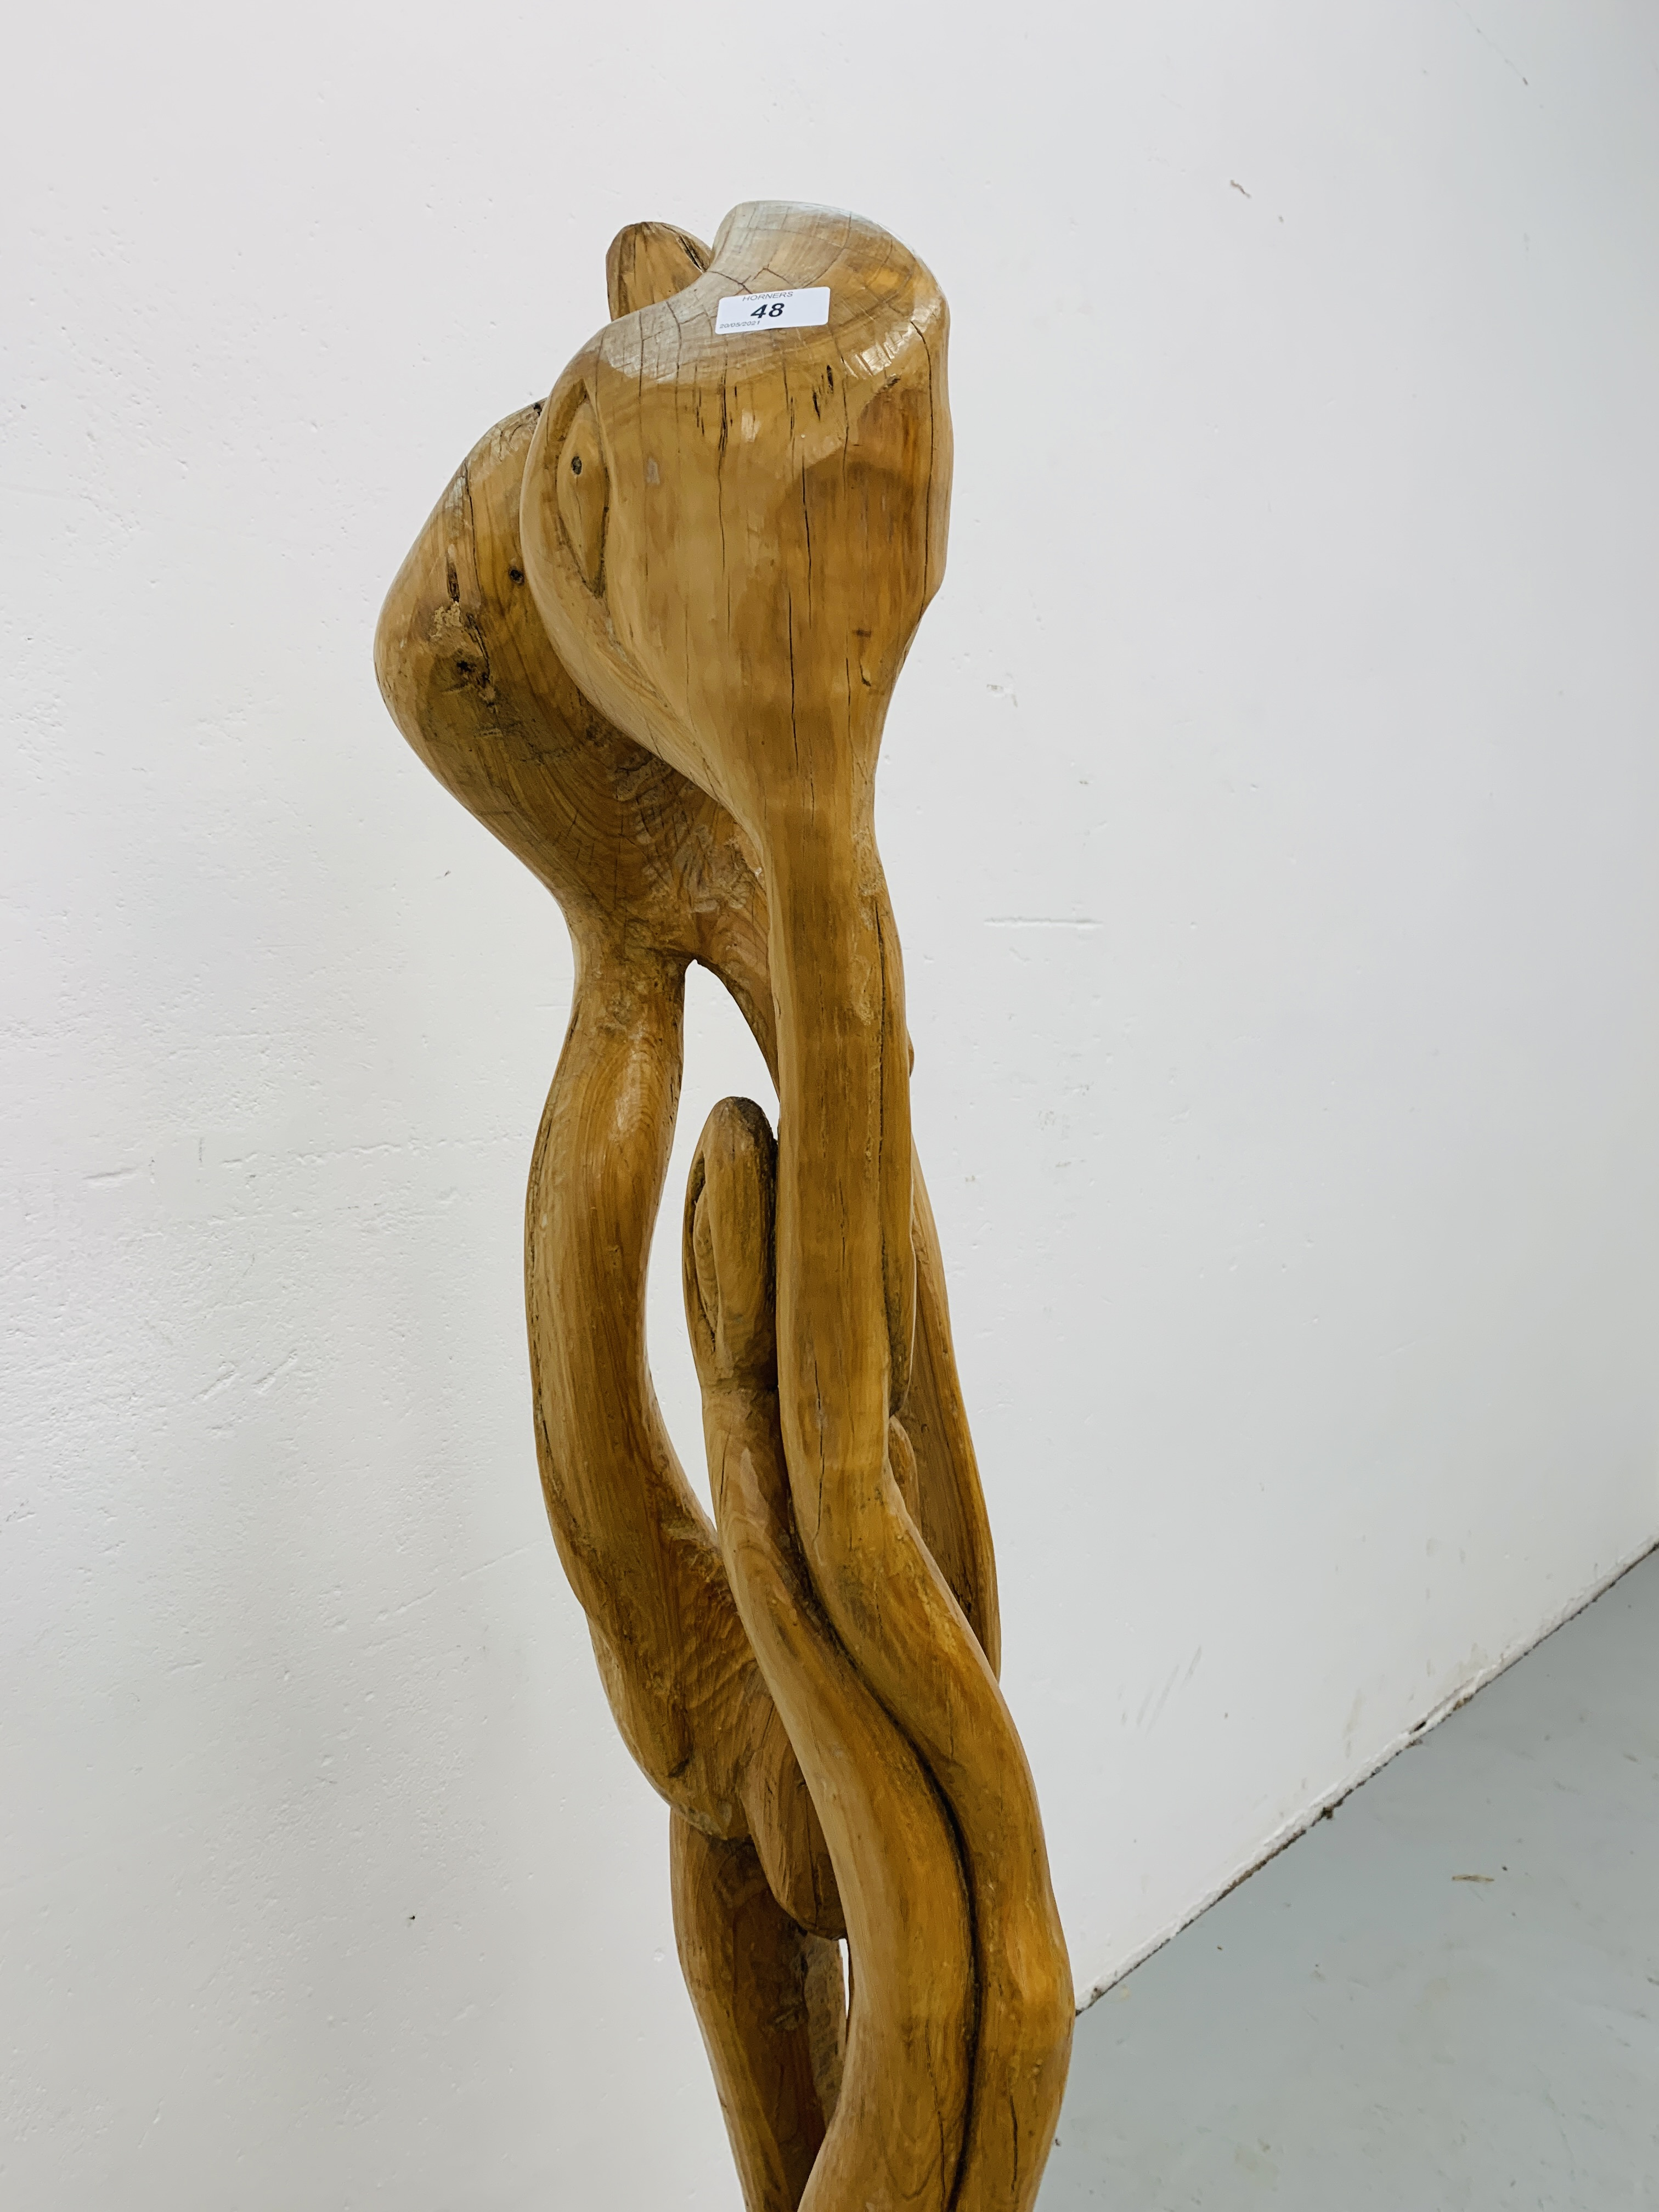 """A HARDWOOD ABSTRACT SCULPTURE """"FAMILY"""" BY P.T. - Image 7 of 9"""